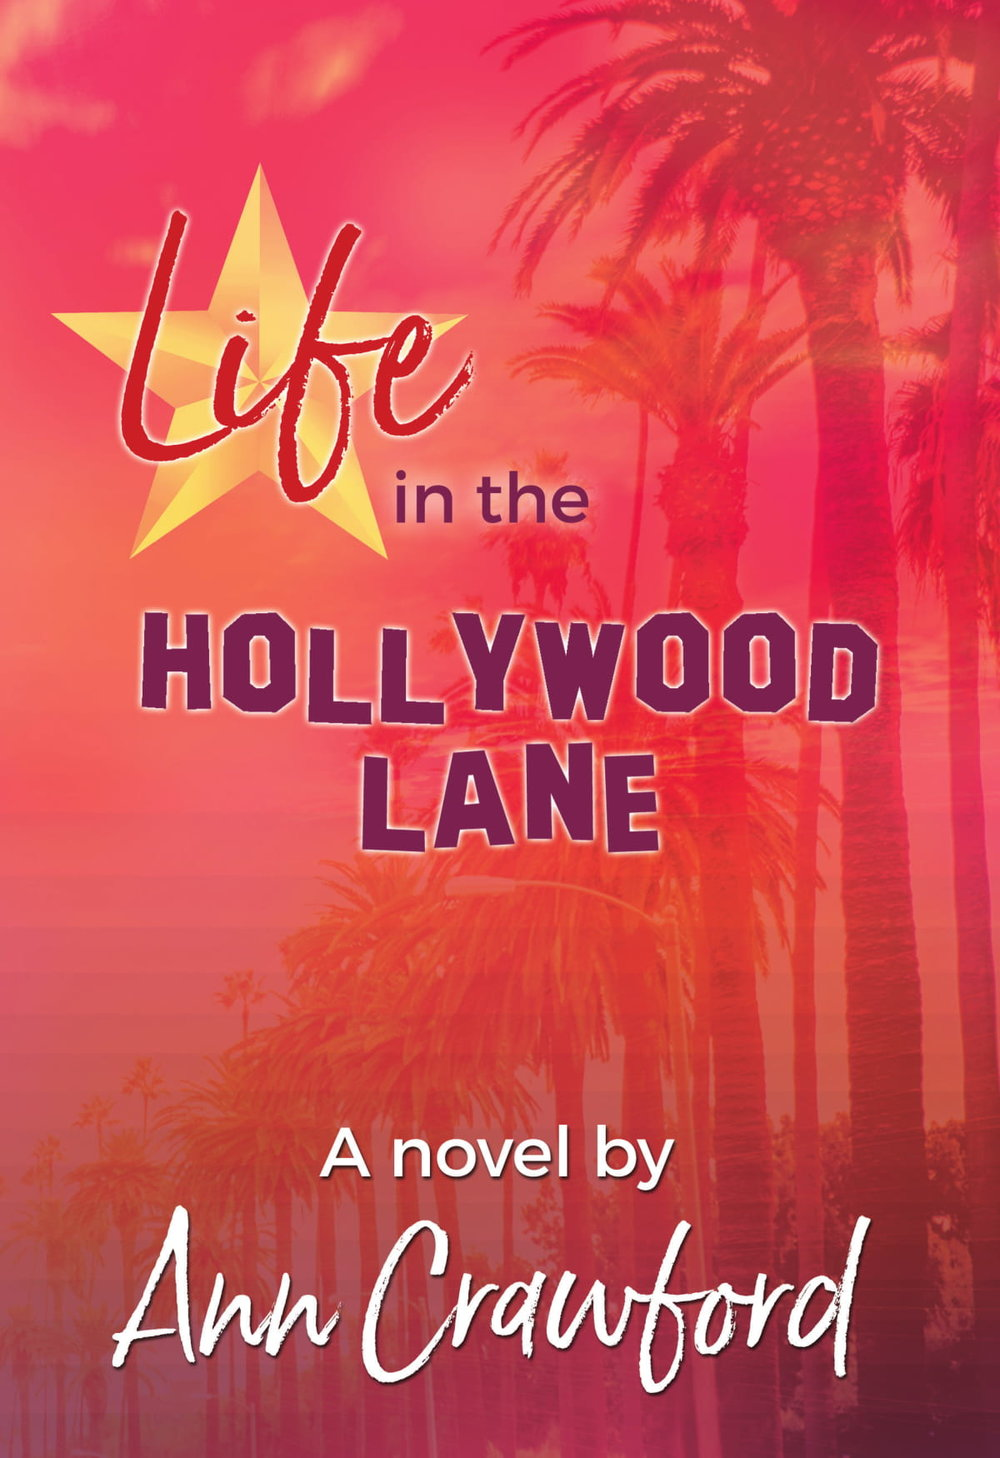 LifeHollywoodLane_PRINT_front cover May 29-1.jpg